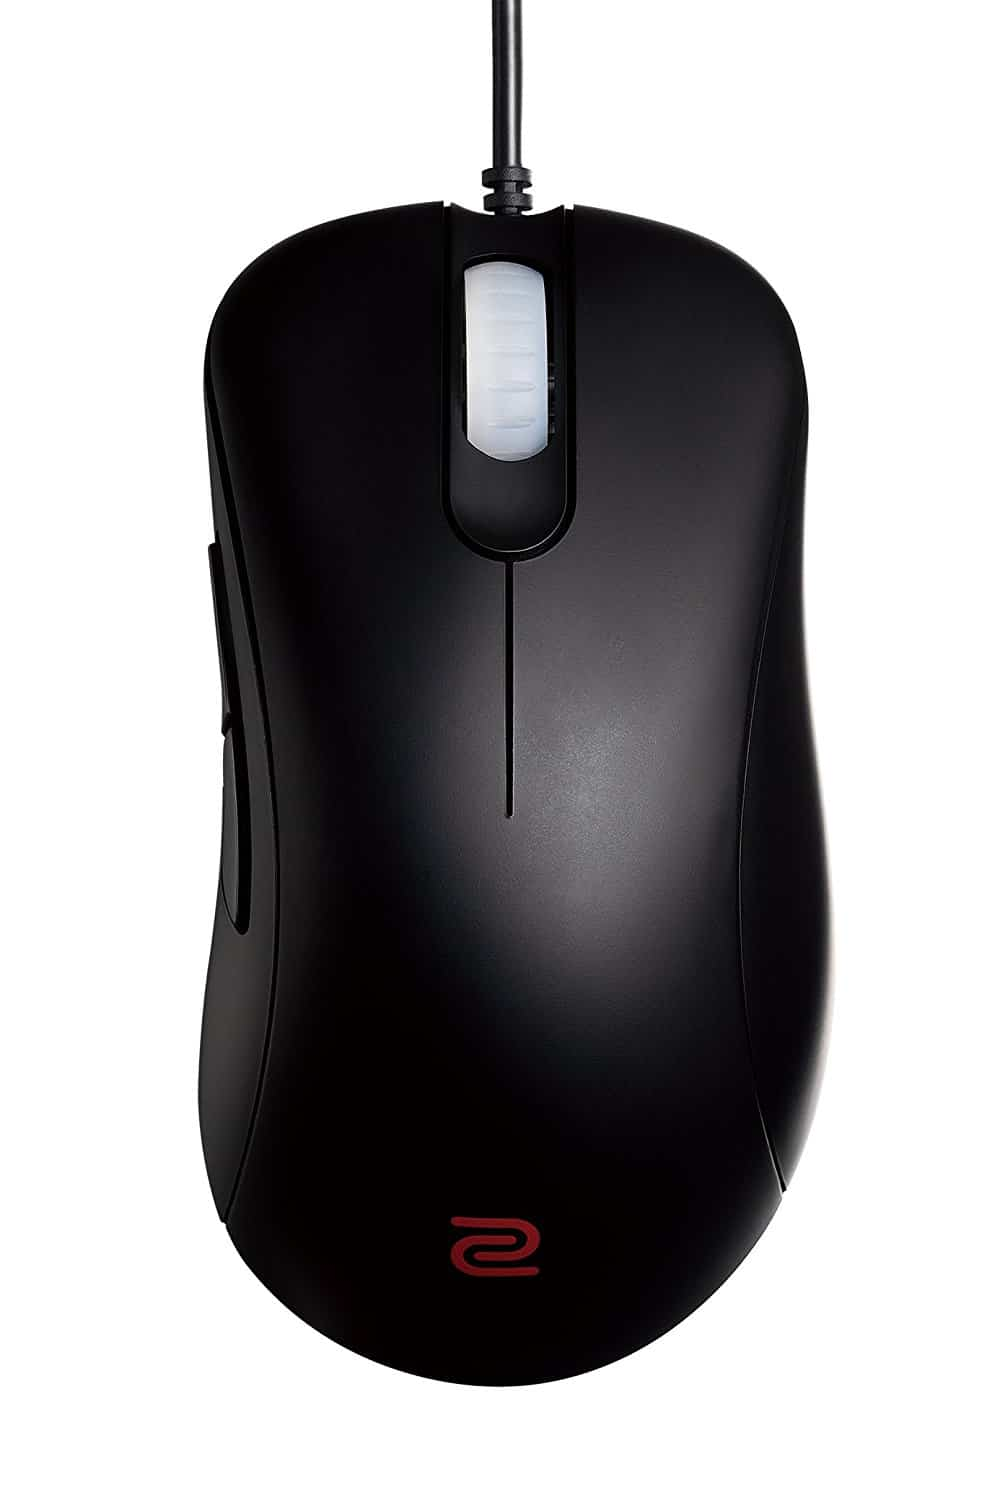 Best Mouse For Apex Legends Fortnite Pubg And Blackout